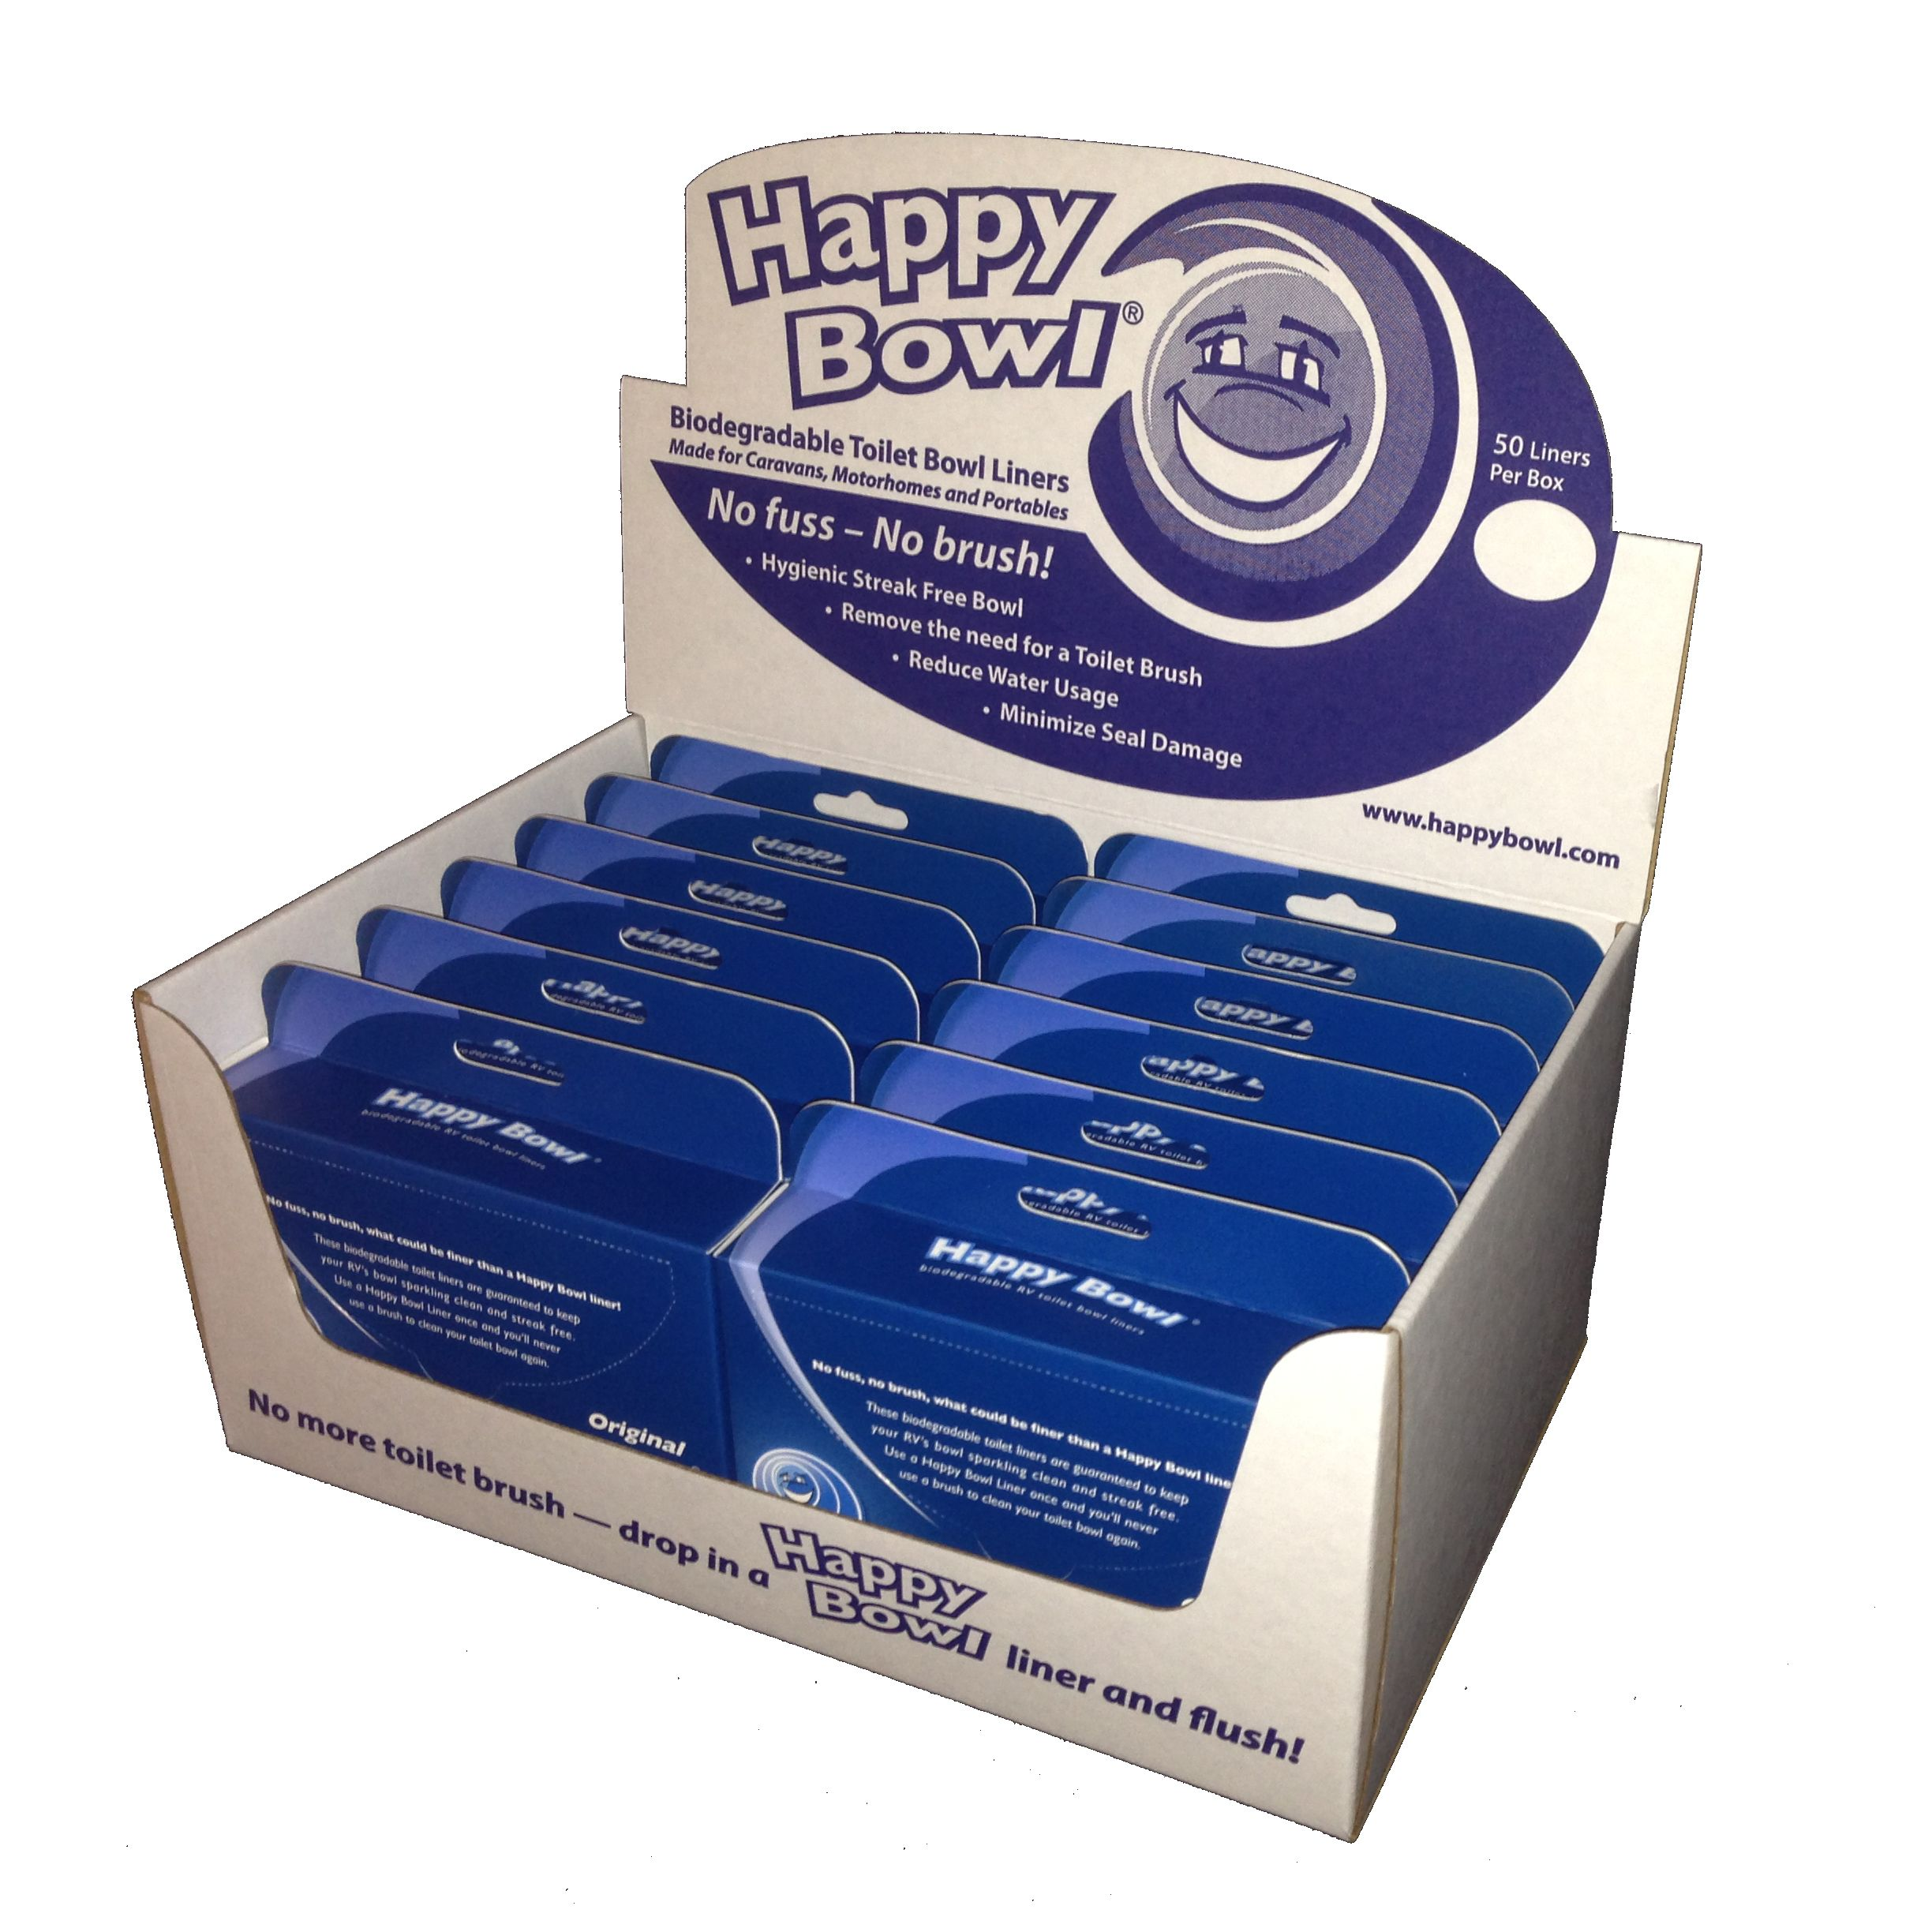 HB1212-POP Happy Bowl Point Of Purchase Display Toilet Bowl Liner